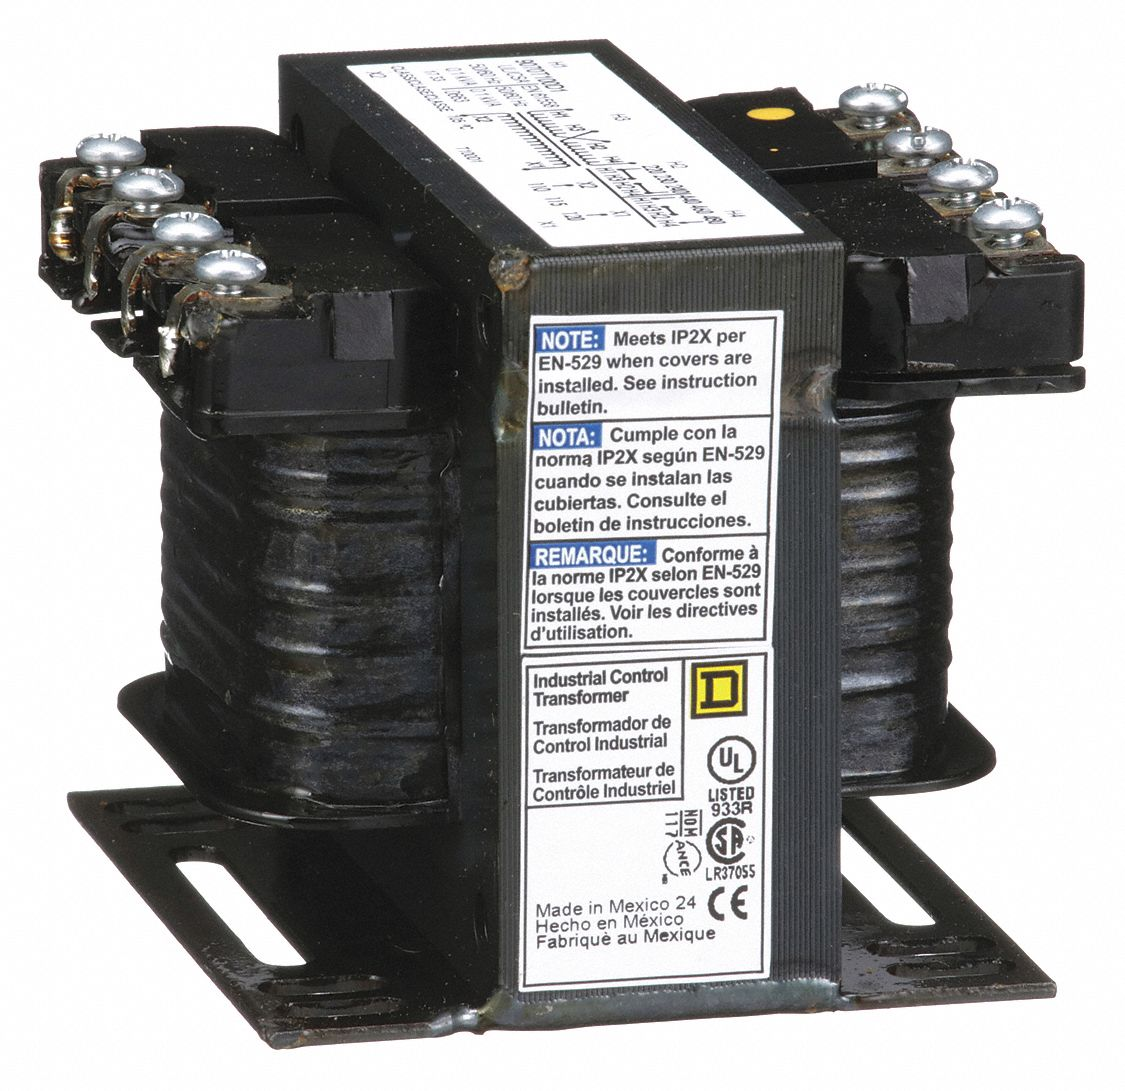 hight resolution of square d control transformer input voltage 240vac 480vac output square d transformer wiring further dayton electric motor wiring